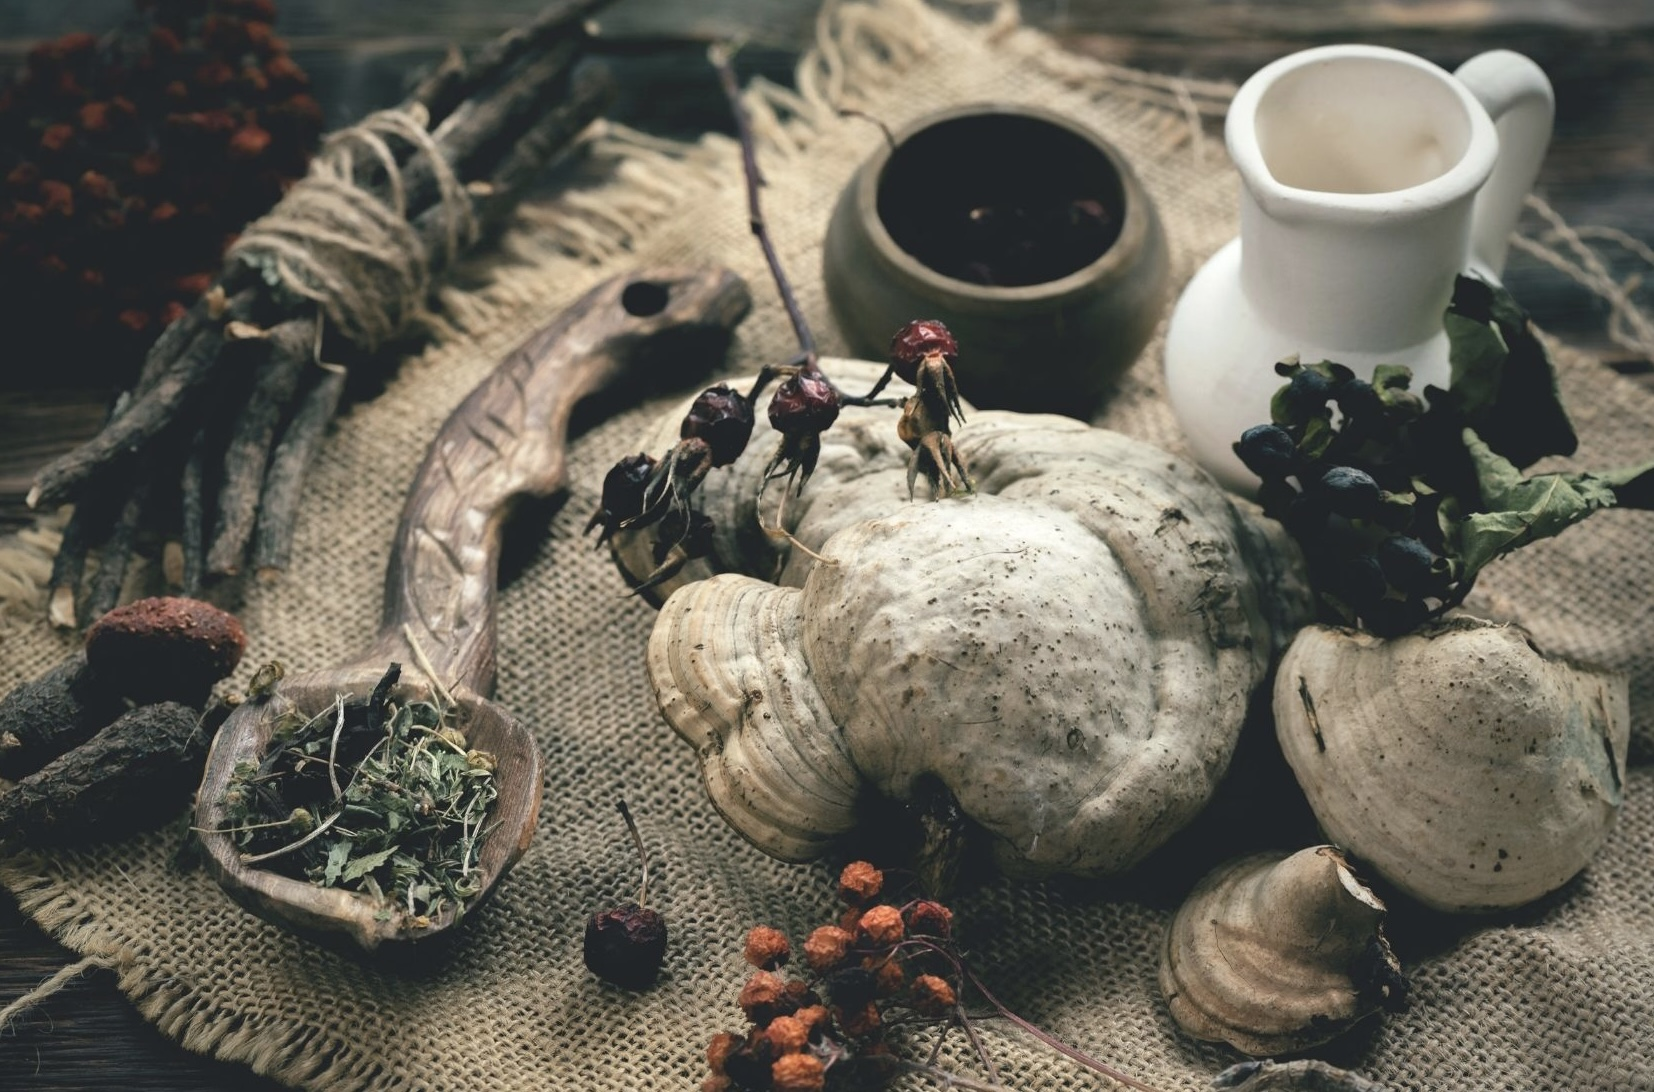 Traditional healers in Africa